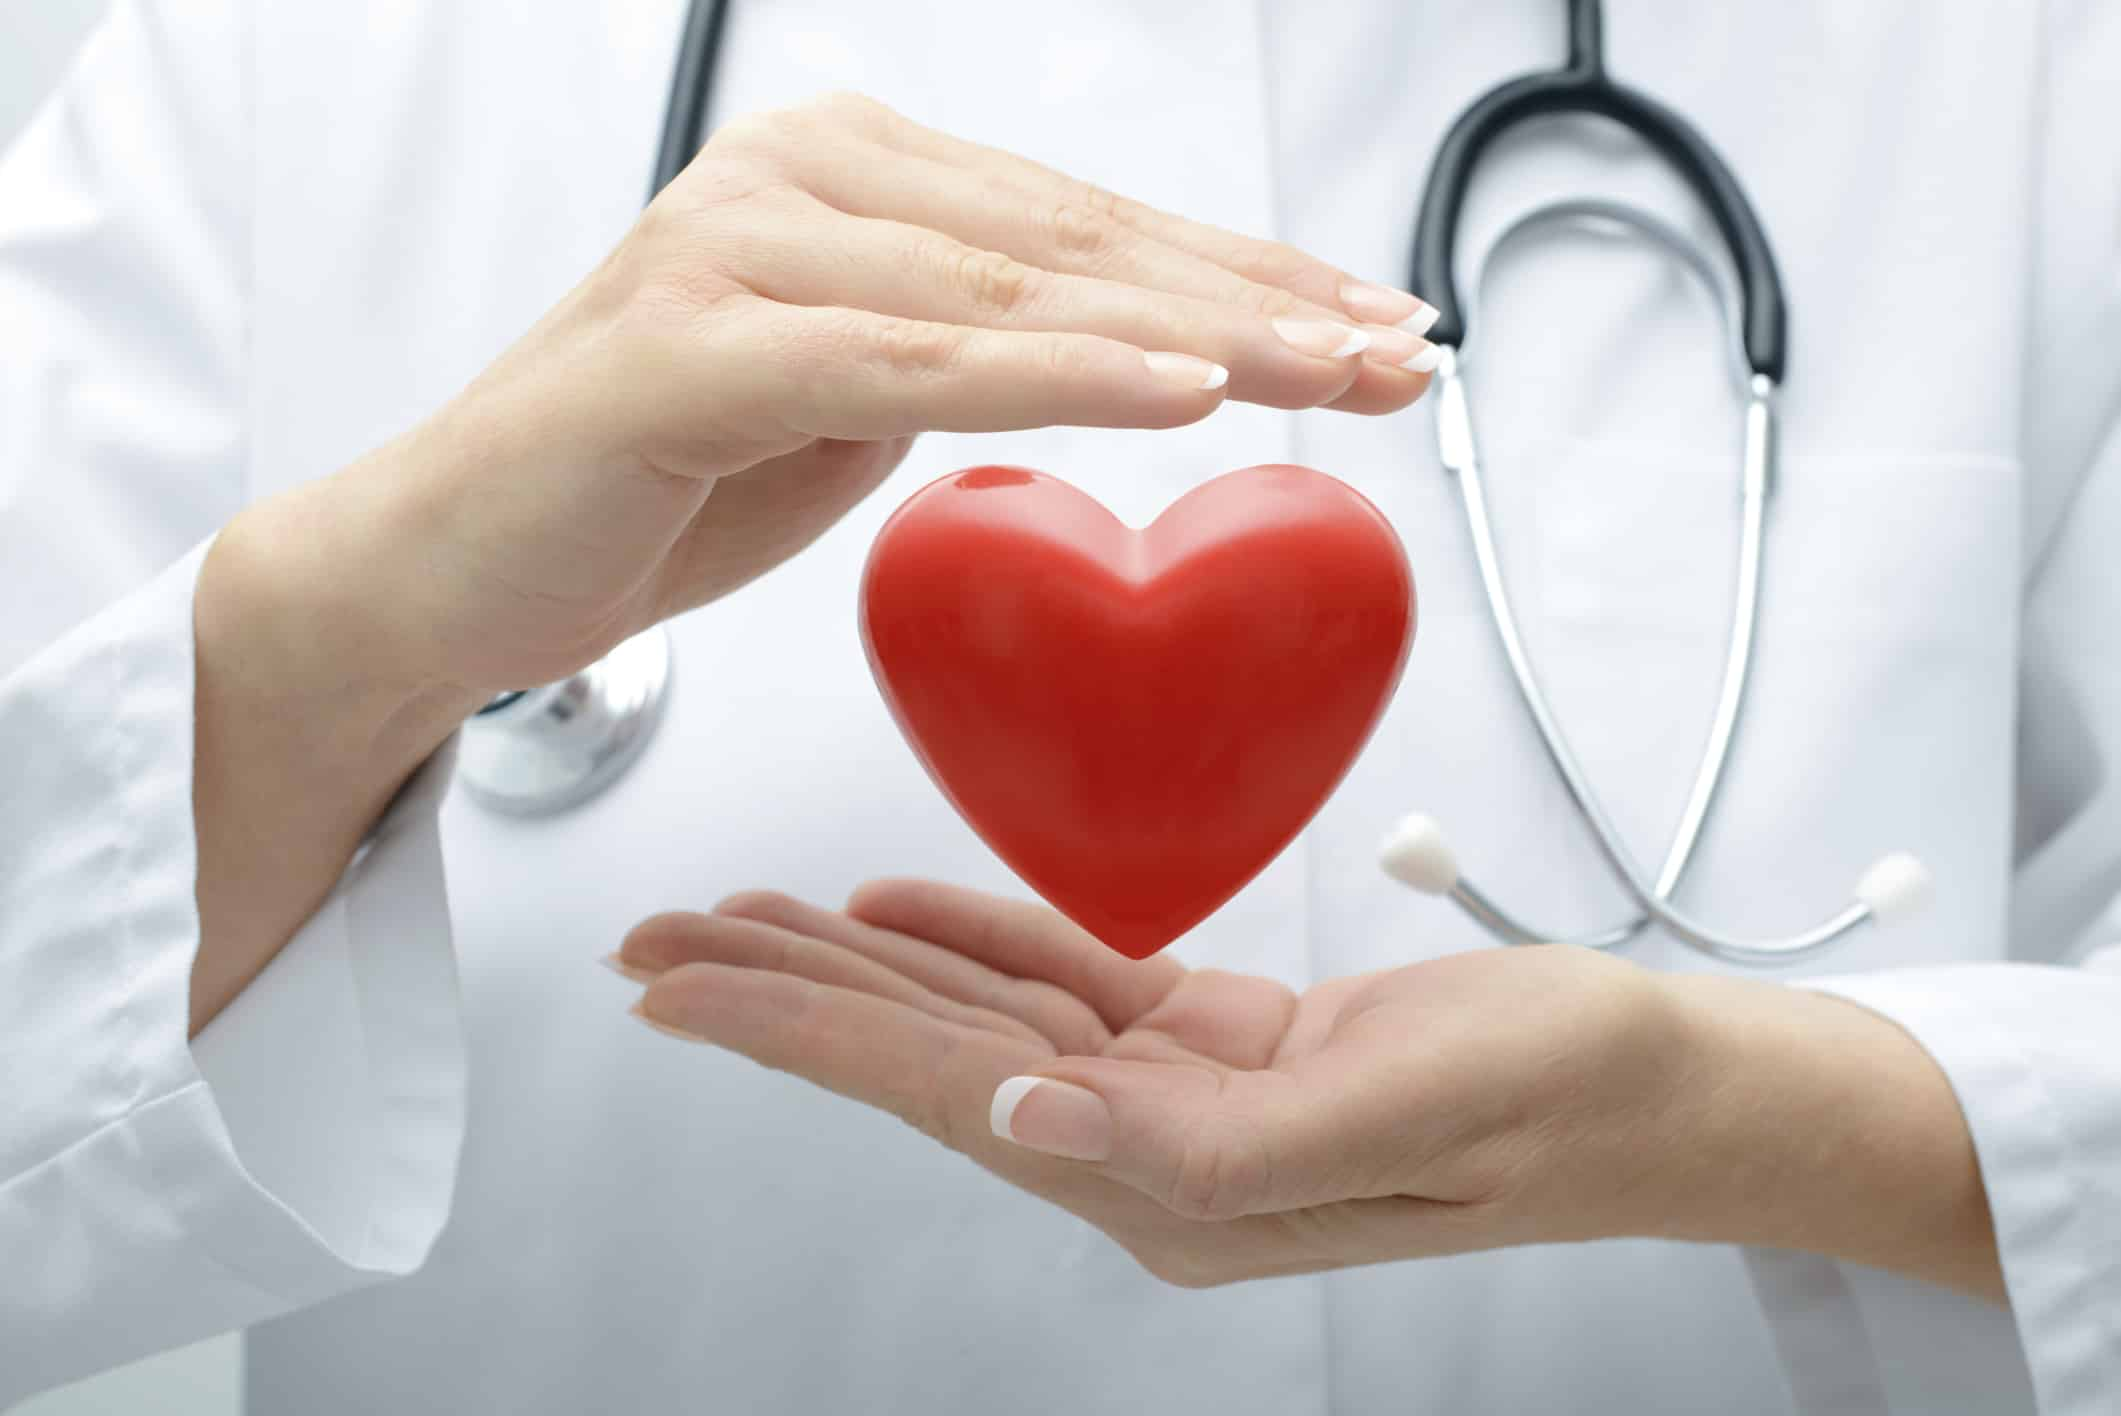 World Heart Day 2020: 7 signs of unhealthy heart